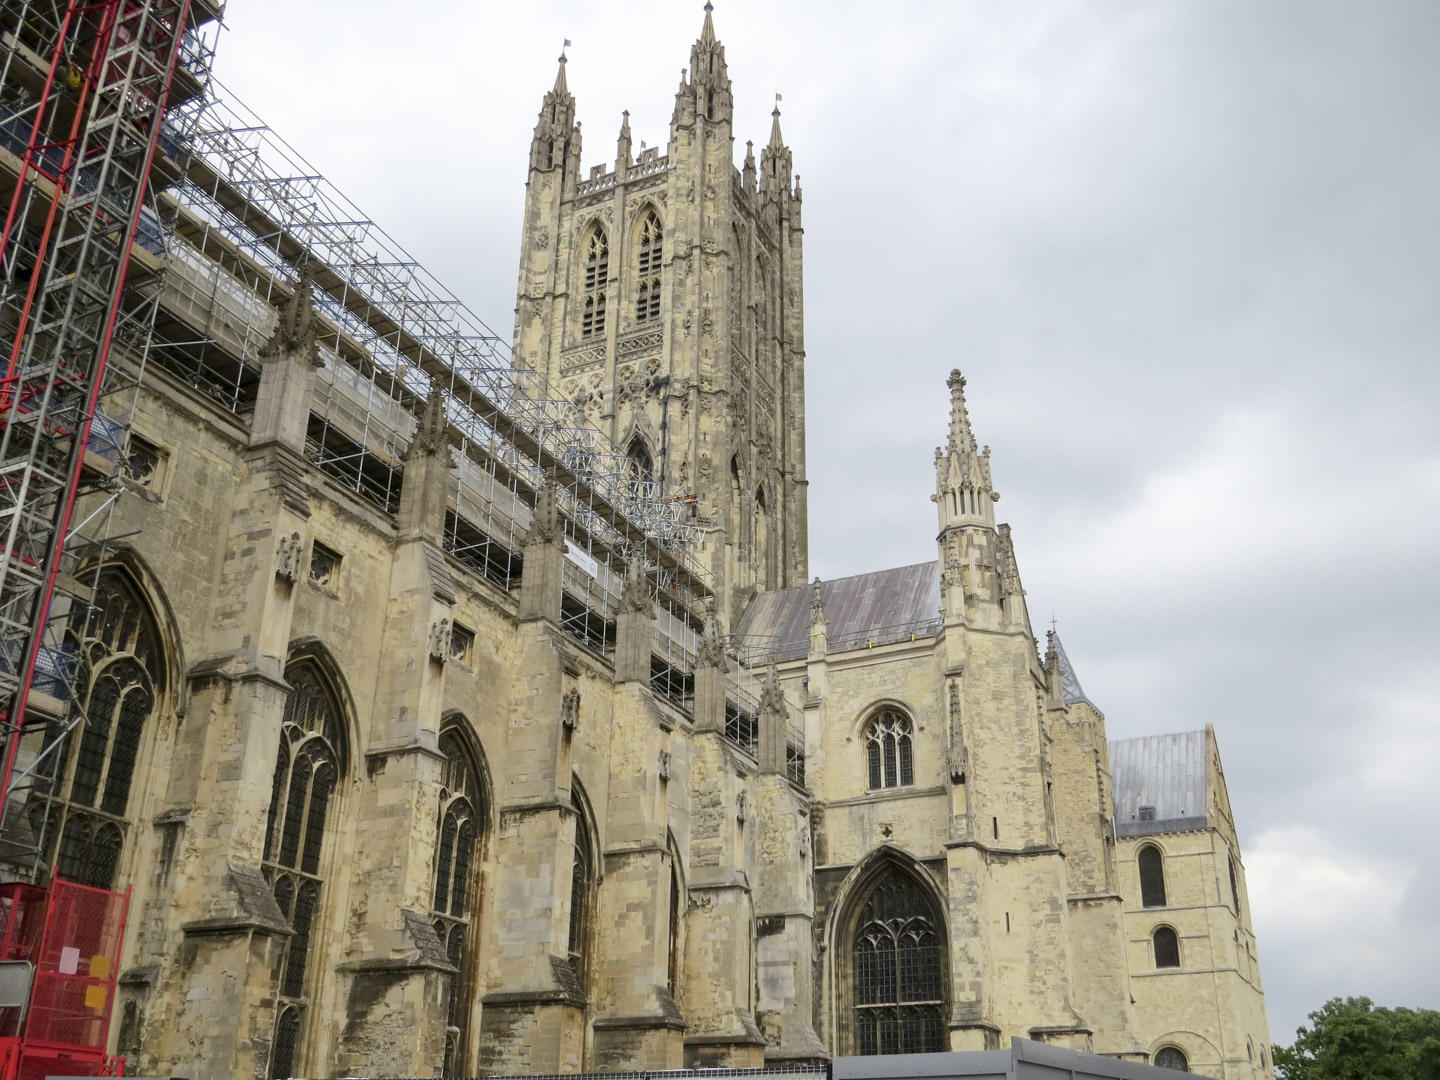 Canterbury Cathedral with scaffolding and grey skyline